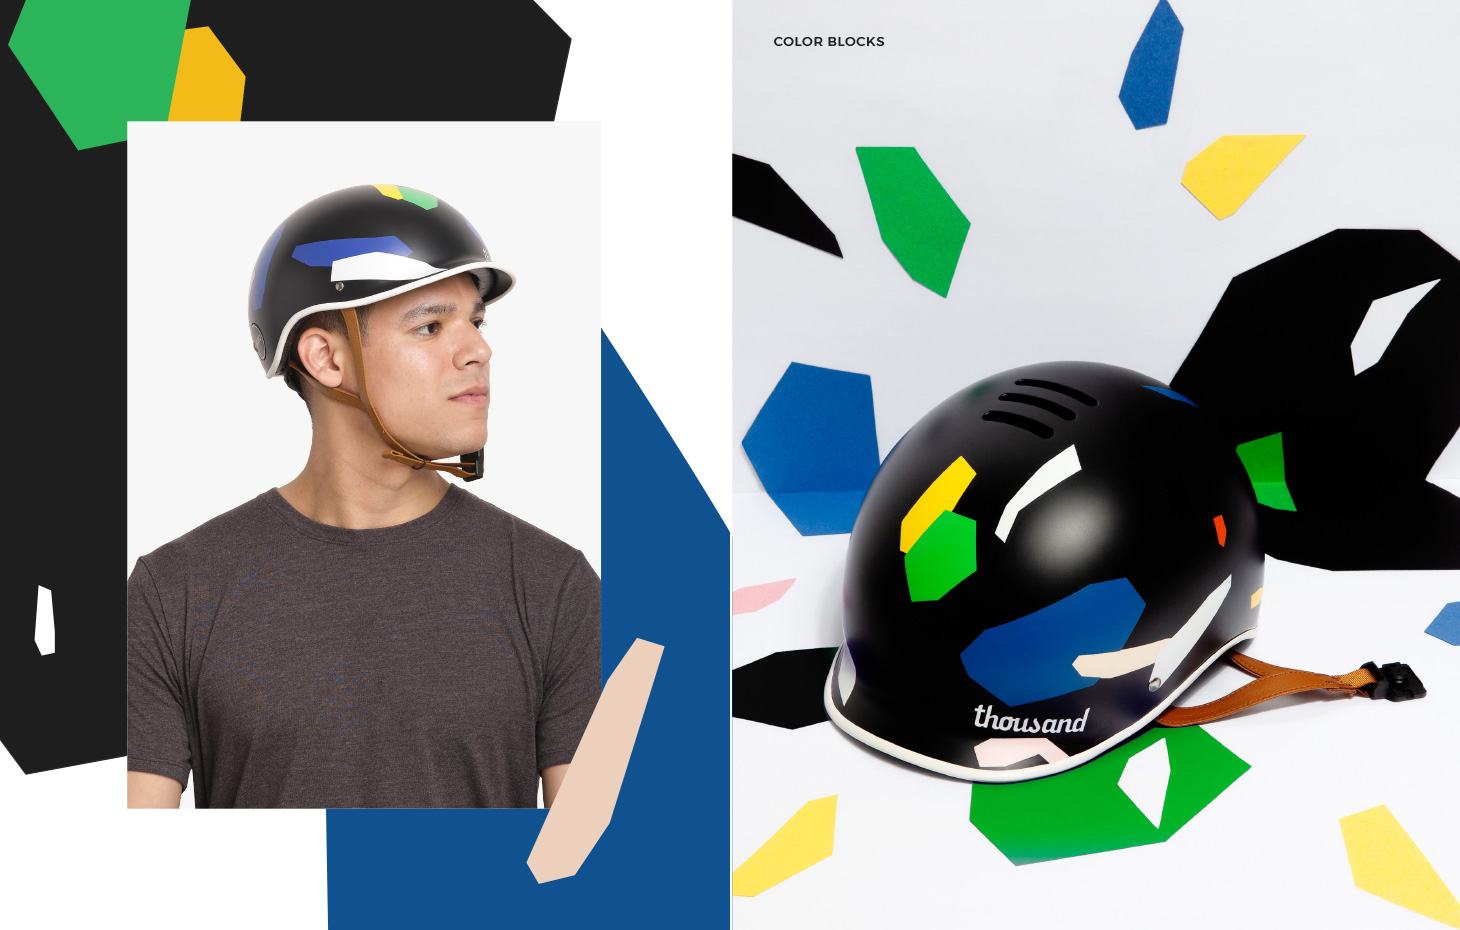 Thousand x Poketo collaboration bike helmets, Color Blocks